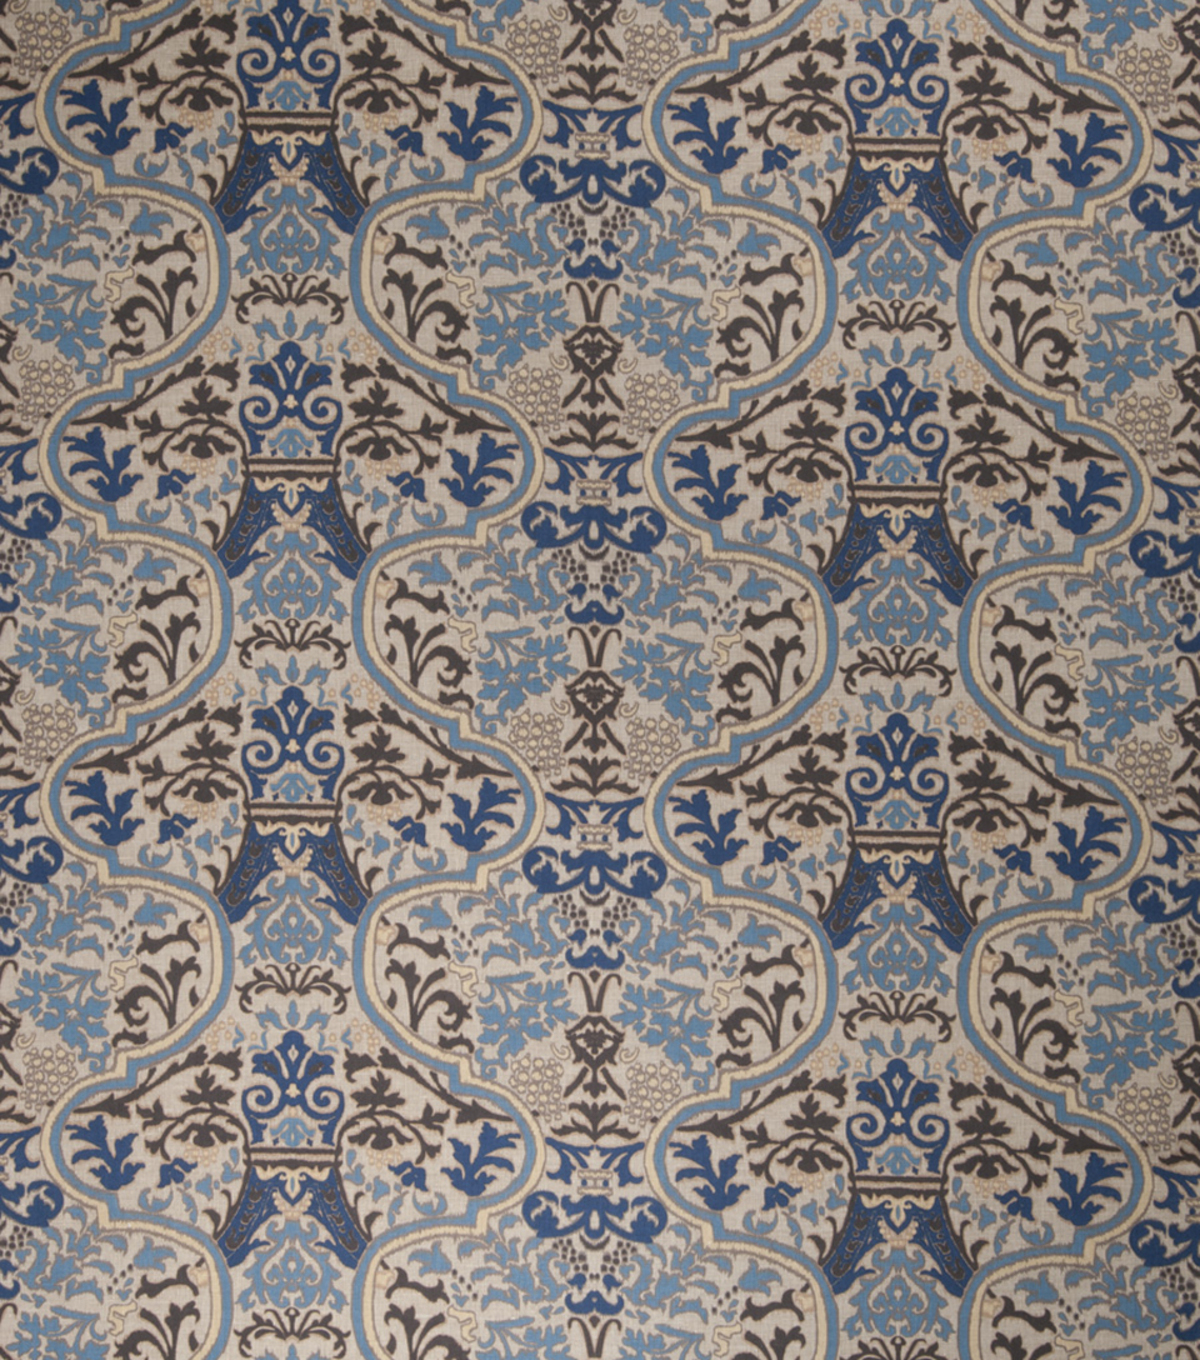 Home Decor 8\u0022x8\u0022 Fabric Swatch-Print Fabric Eaton Square Vanguard Royal